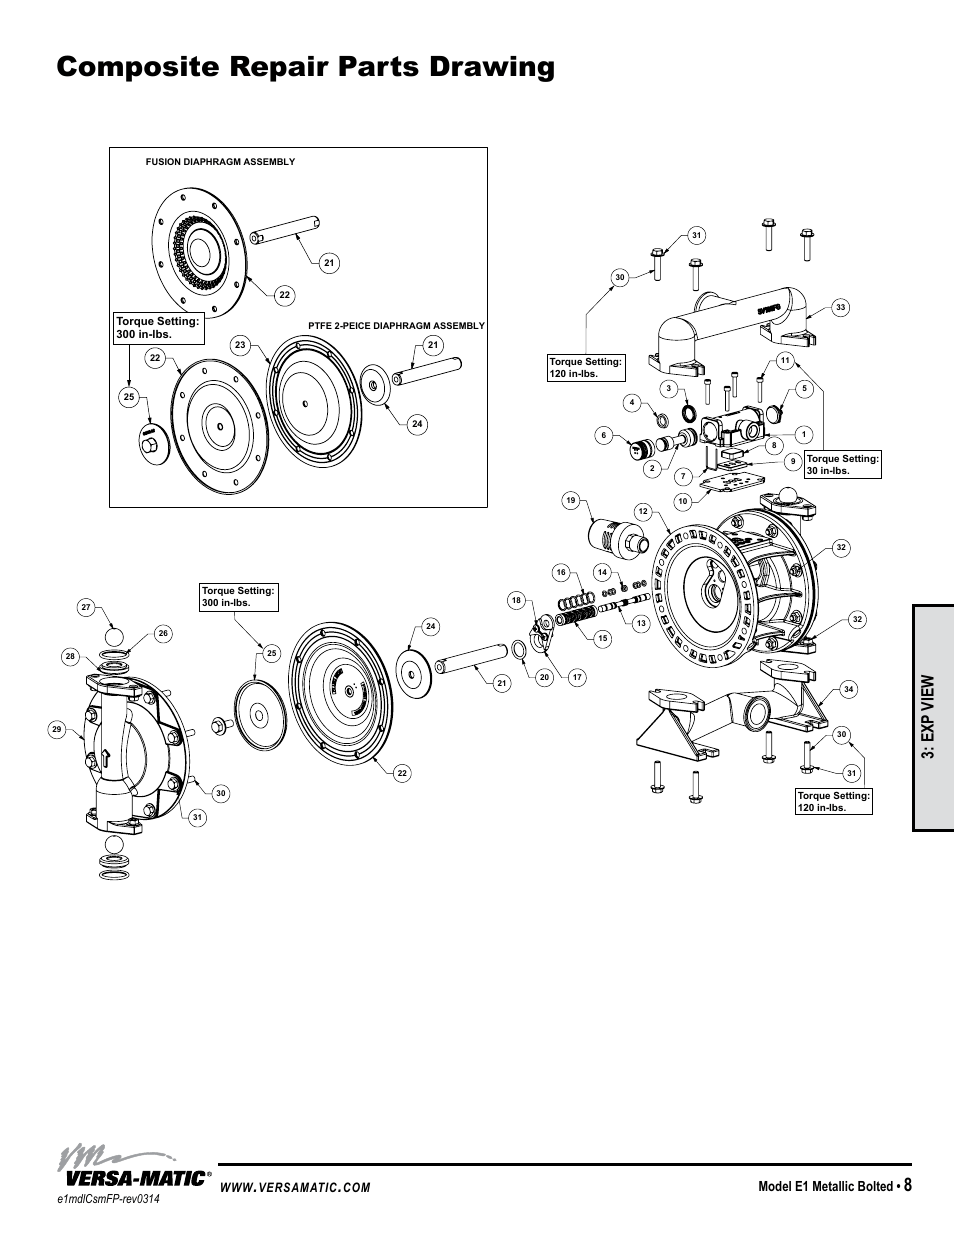 Troubleshooting guide, Composite repair parts drawing